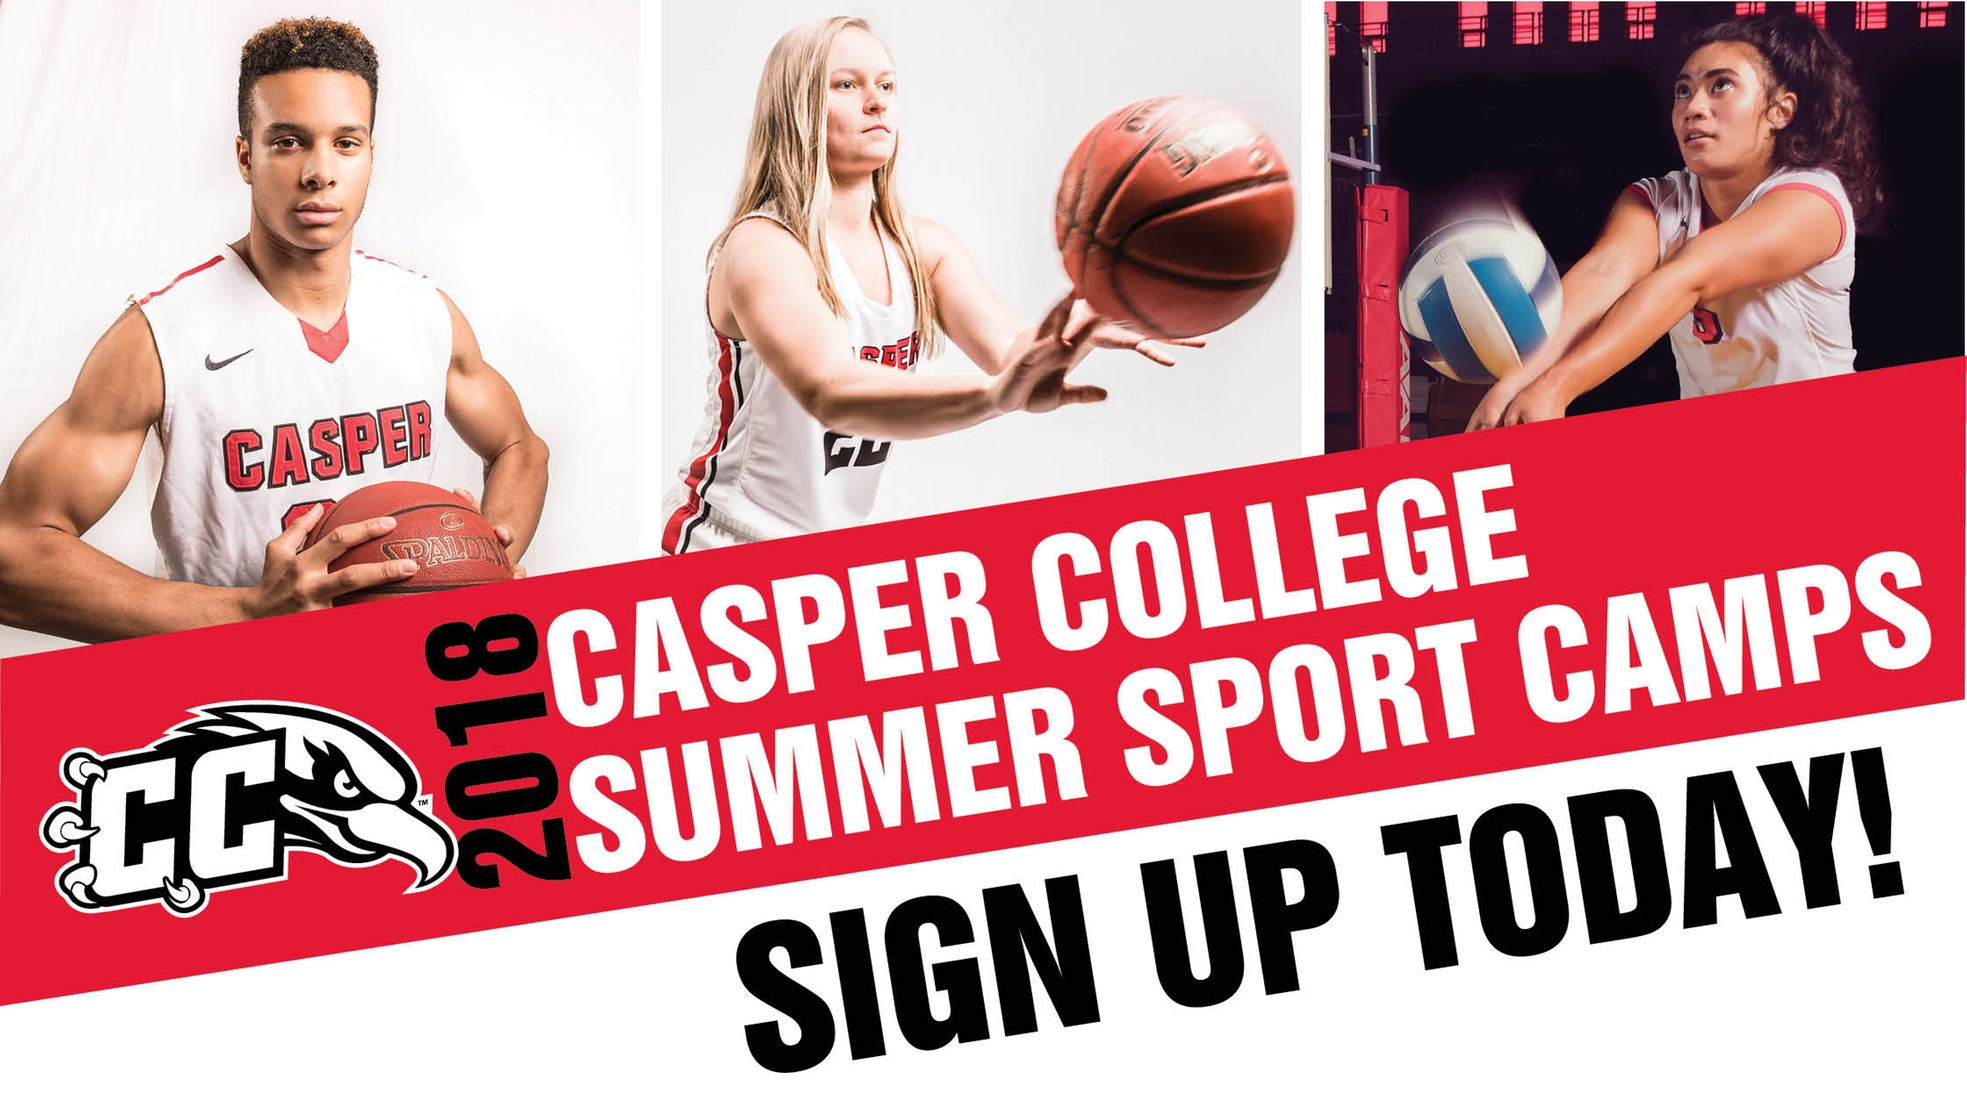 2018 Casper College summer sports camps. Sign up today!